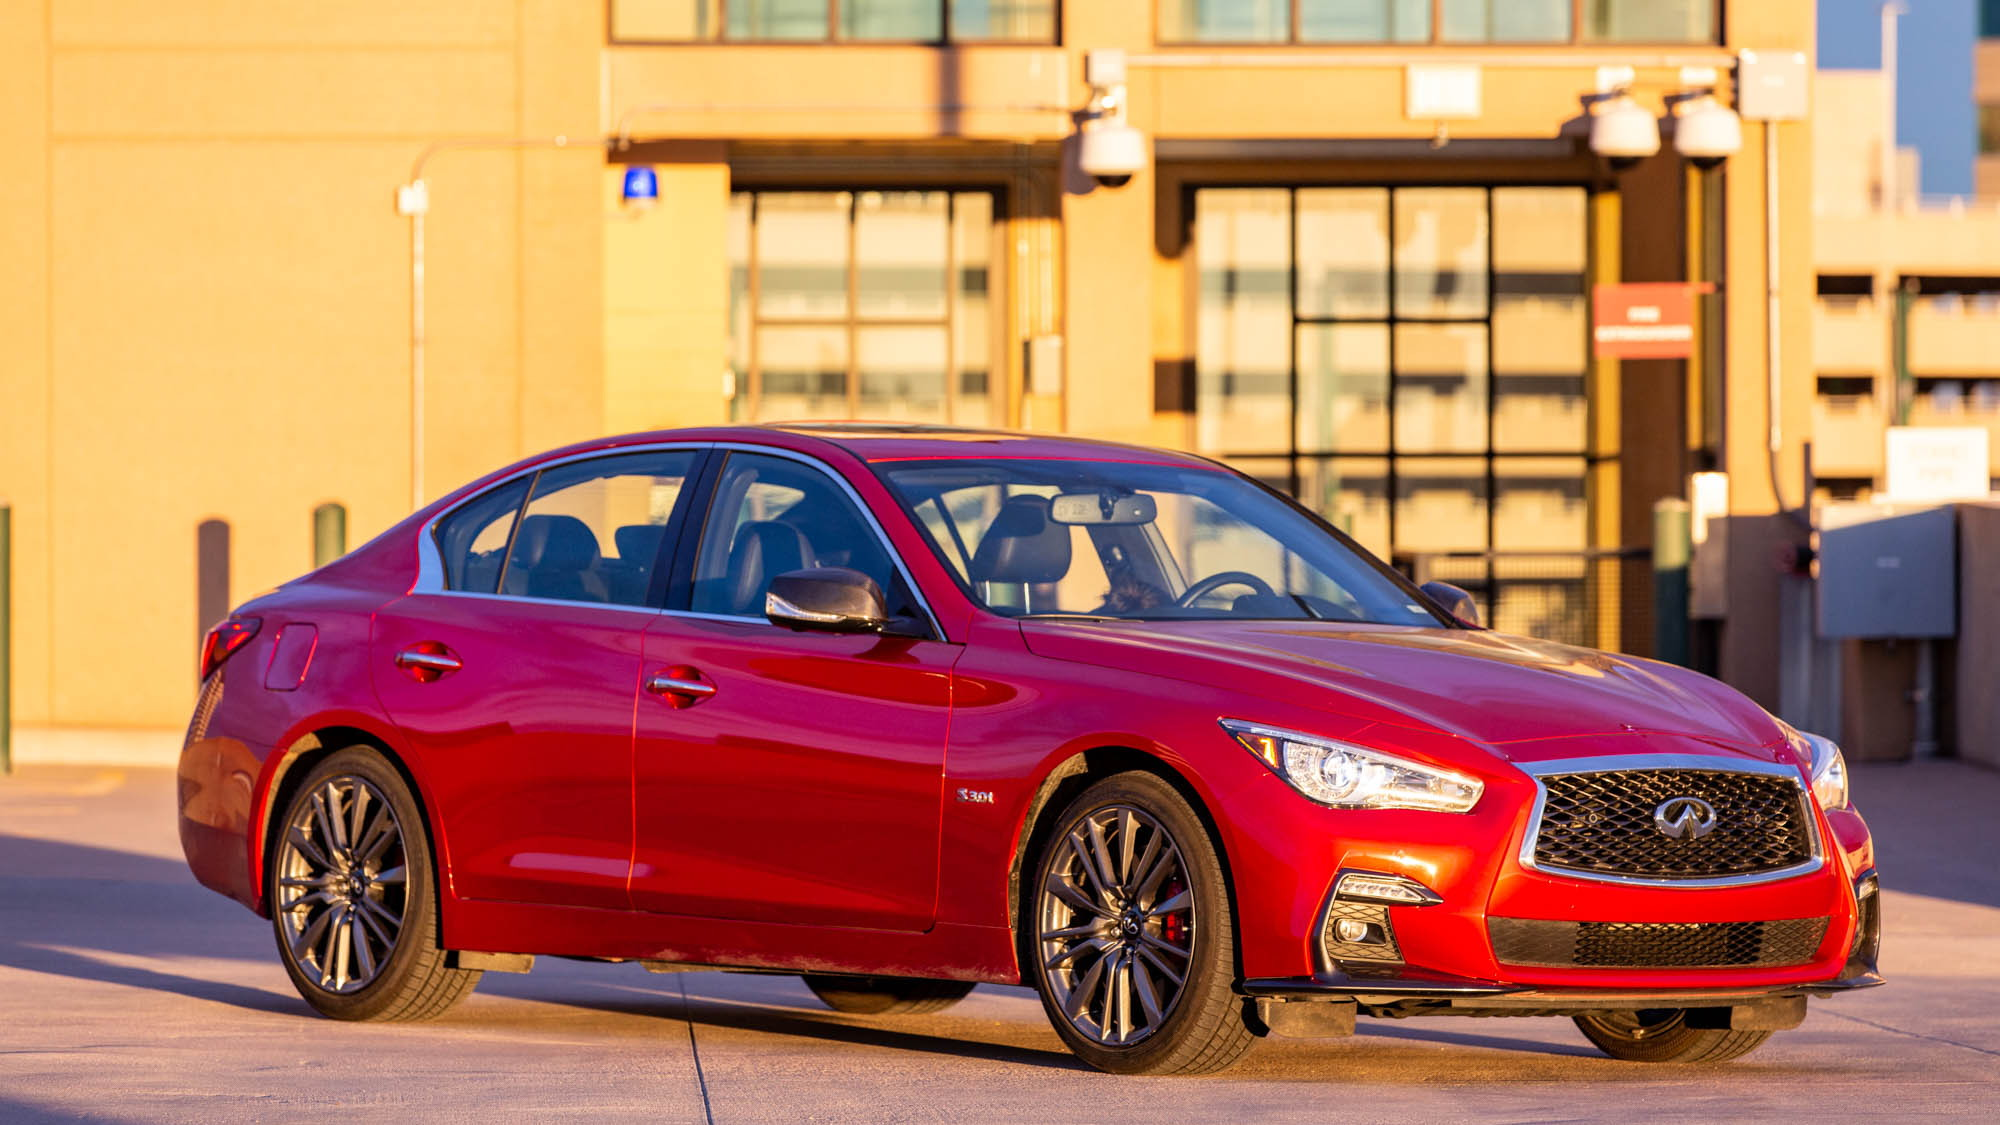 2020 Infiniti Q50 Research New